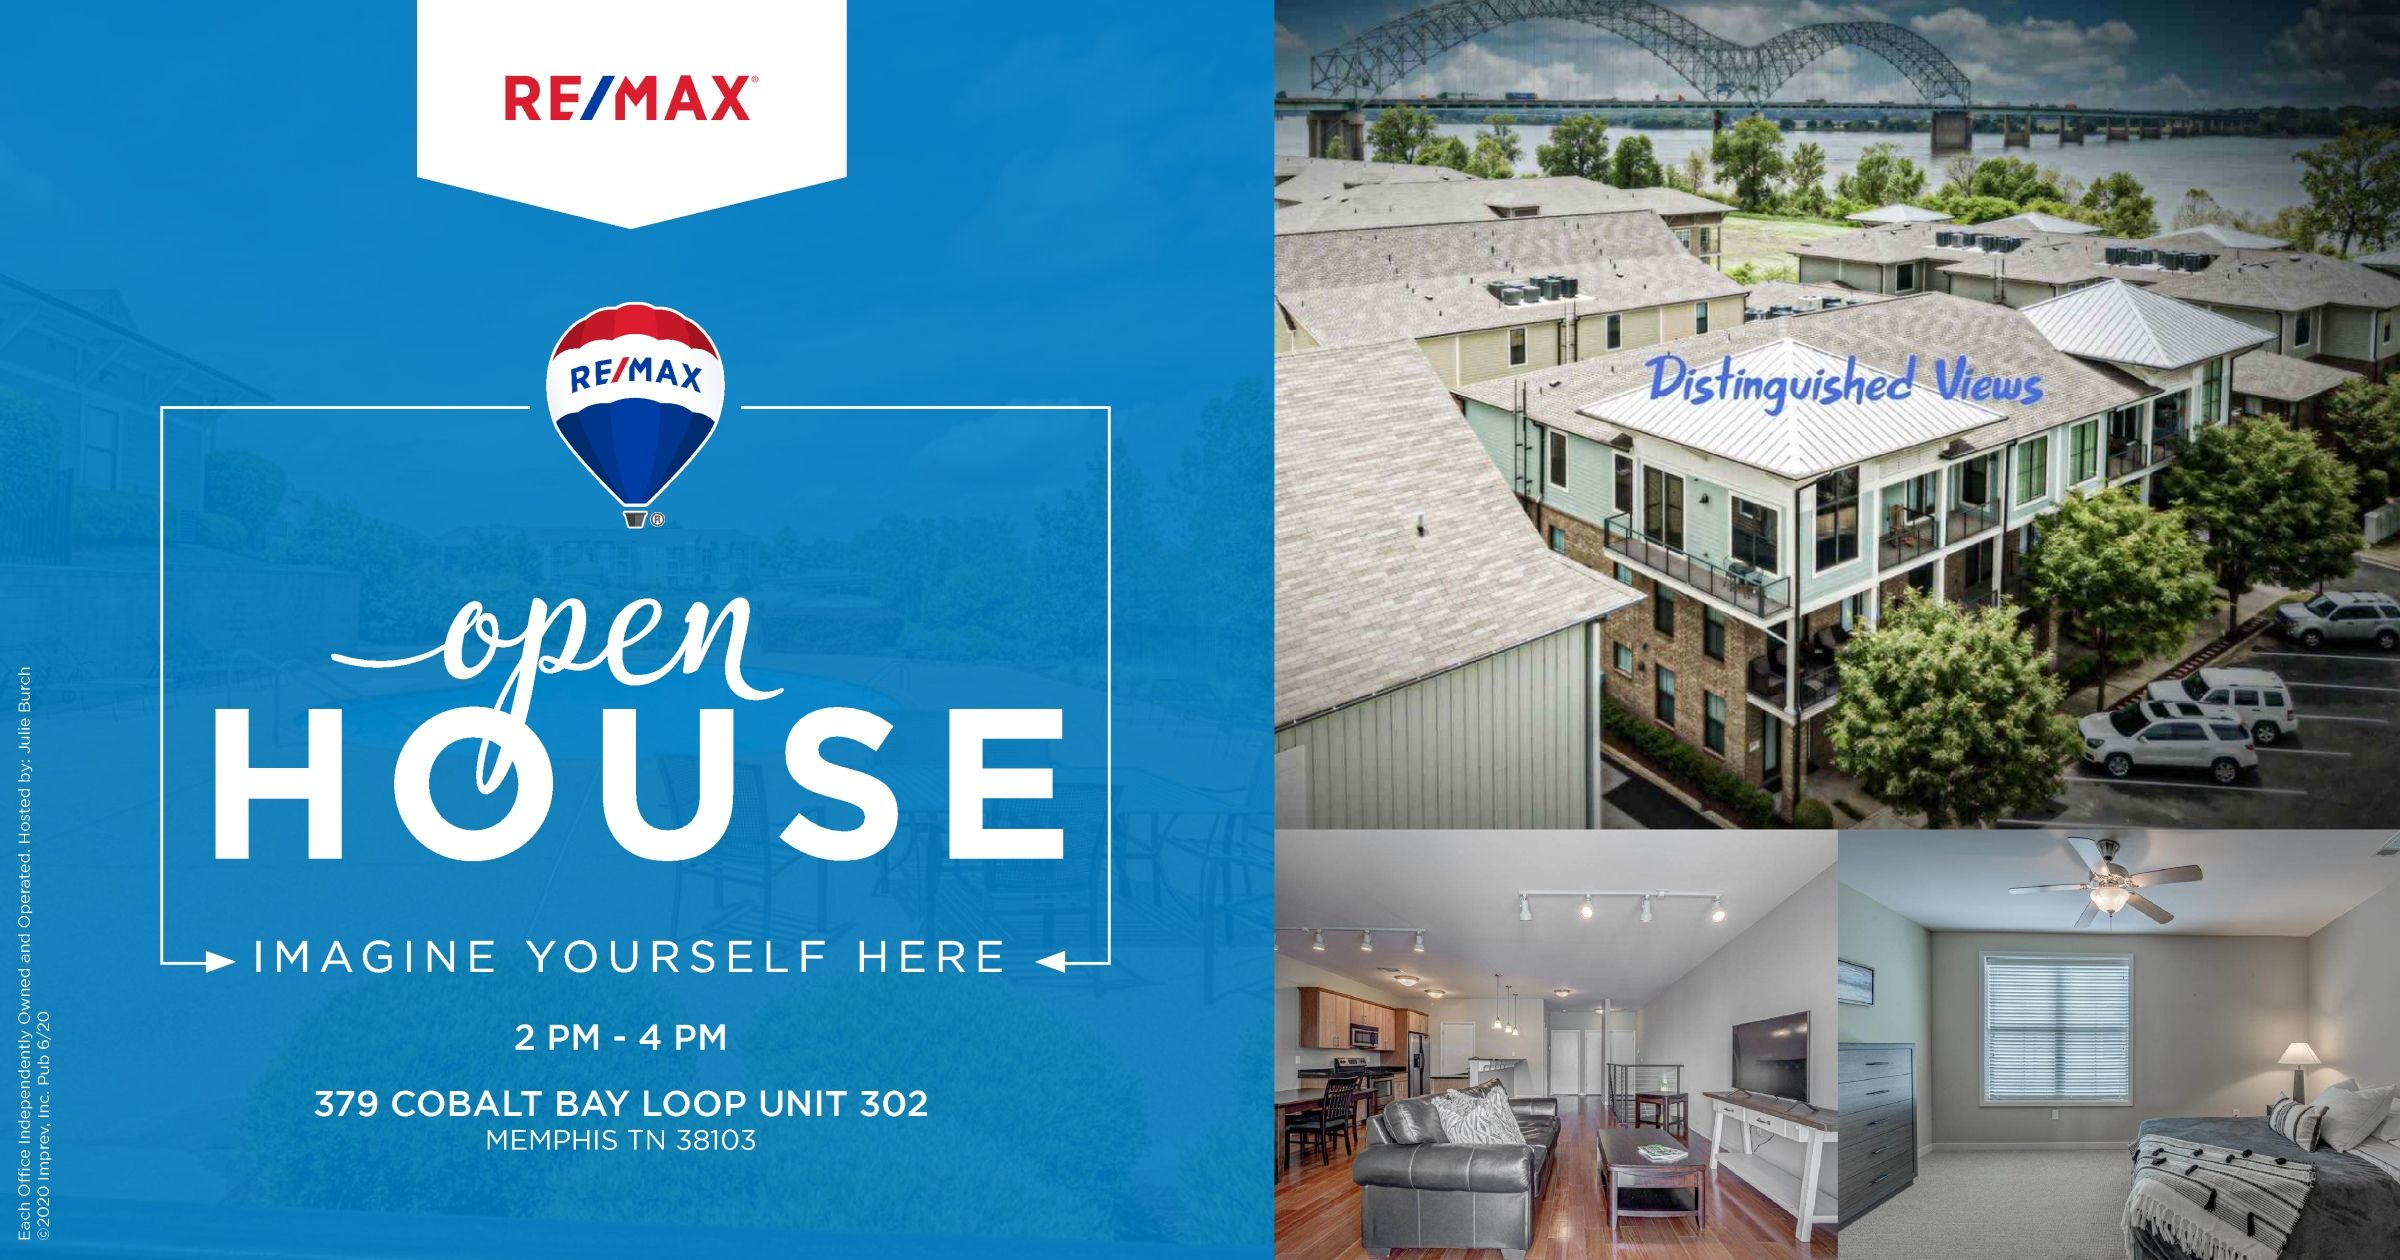 , OPEN HOUSE in DOWNTOWN MEMPHIS! – Sunday June 14th 2pm – 4pm!  Hosted by: Julie Burch (901)574-2799  #openhouse #househunting #locationlocationlocatio…, Family Blog 2020, Family Blog 2020